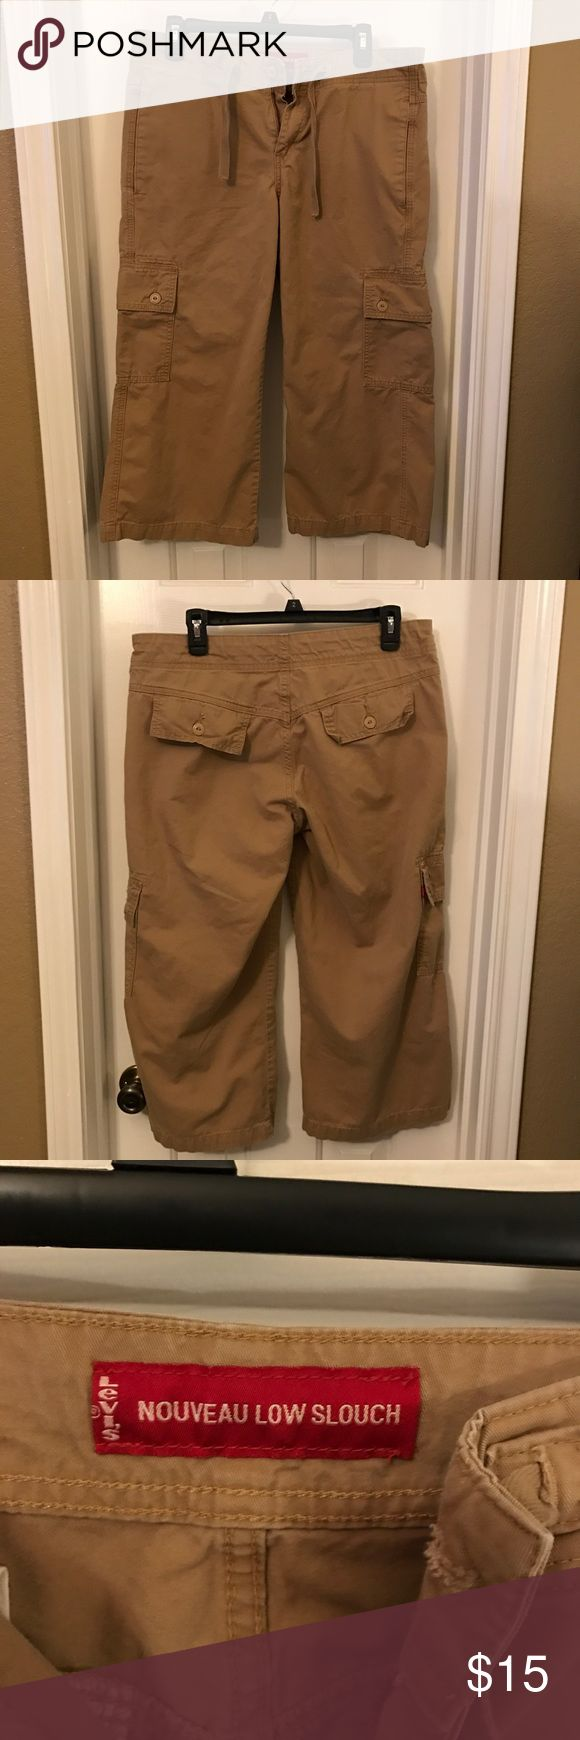 "Levi's Khaki Capri Cargo Pants Size Medium EUC Levi's Nouveau Low Slouch Khaki Capri Cargo Pants Size Medium. They are in excellent condition--no rips, holes or stains. They were only worn a couple of times. They have an outside drawstring. Inseam is about 22"". Material is 100% cotton. Smoke-free home. Levi's Pants Capris"